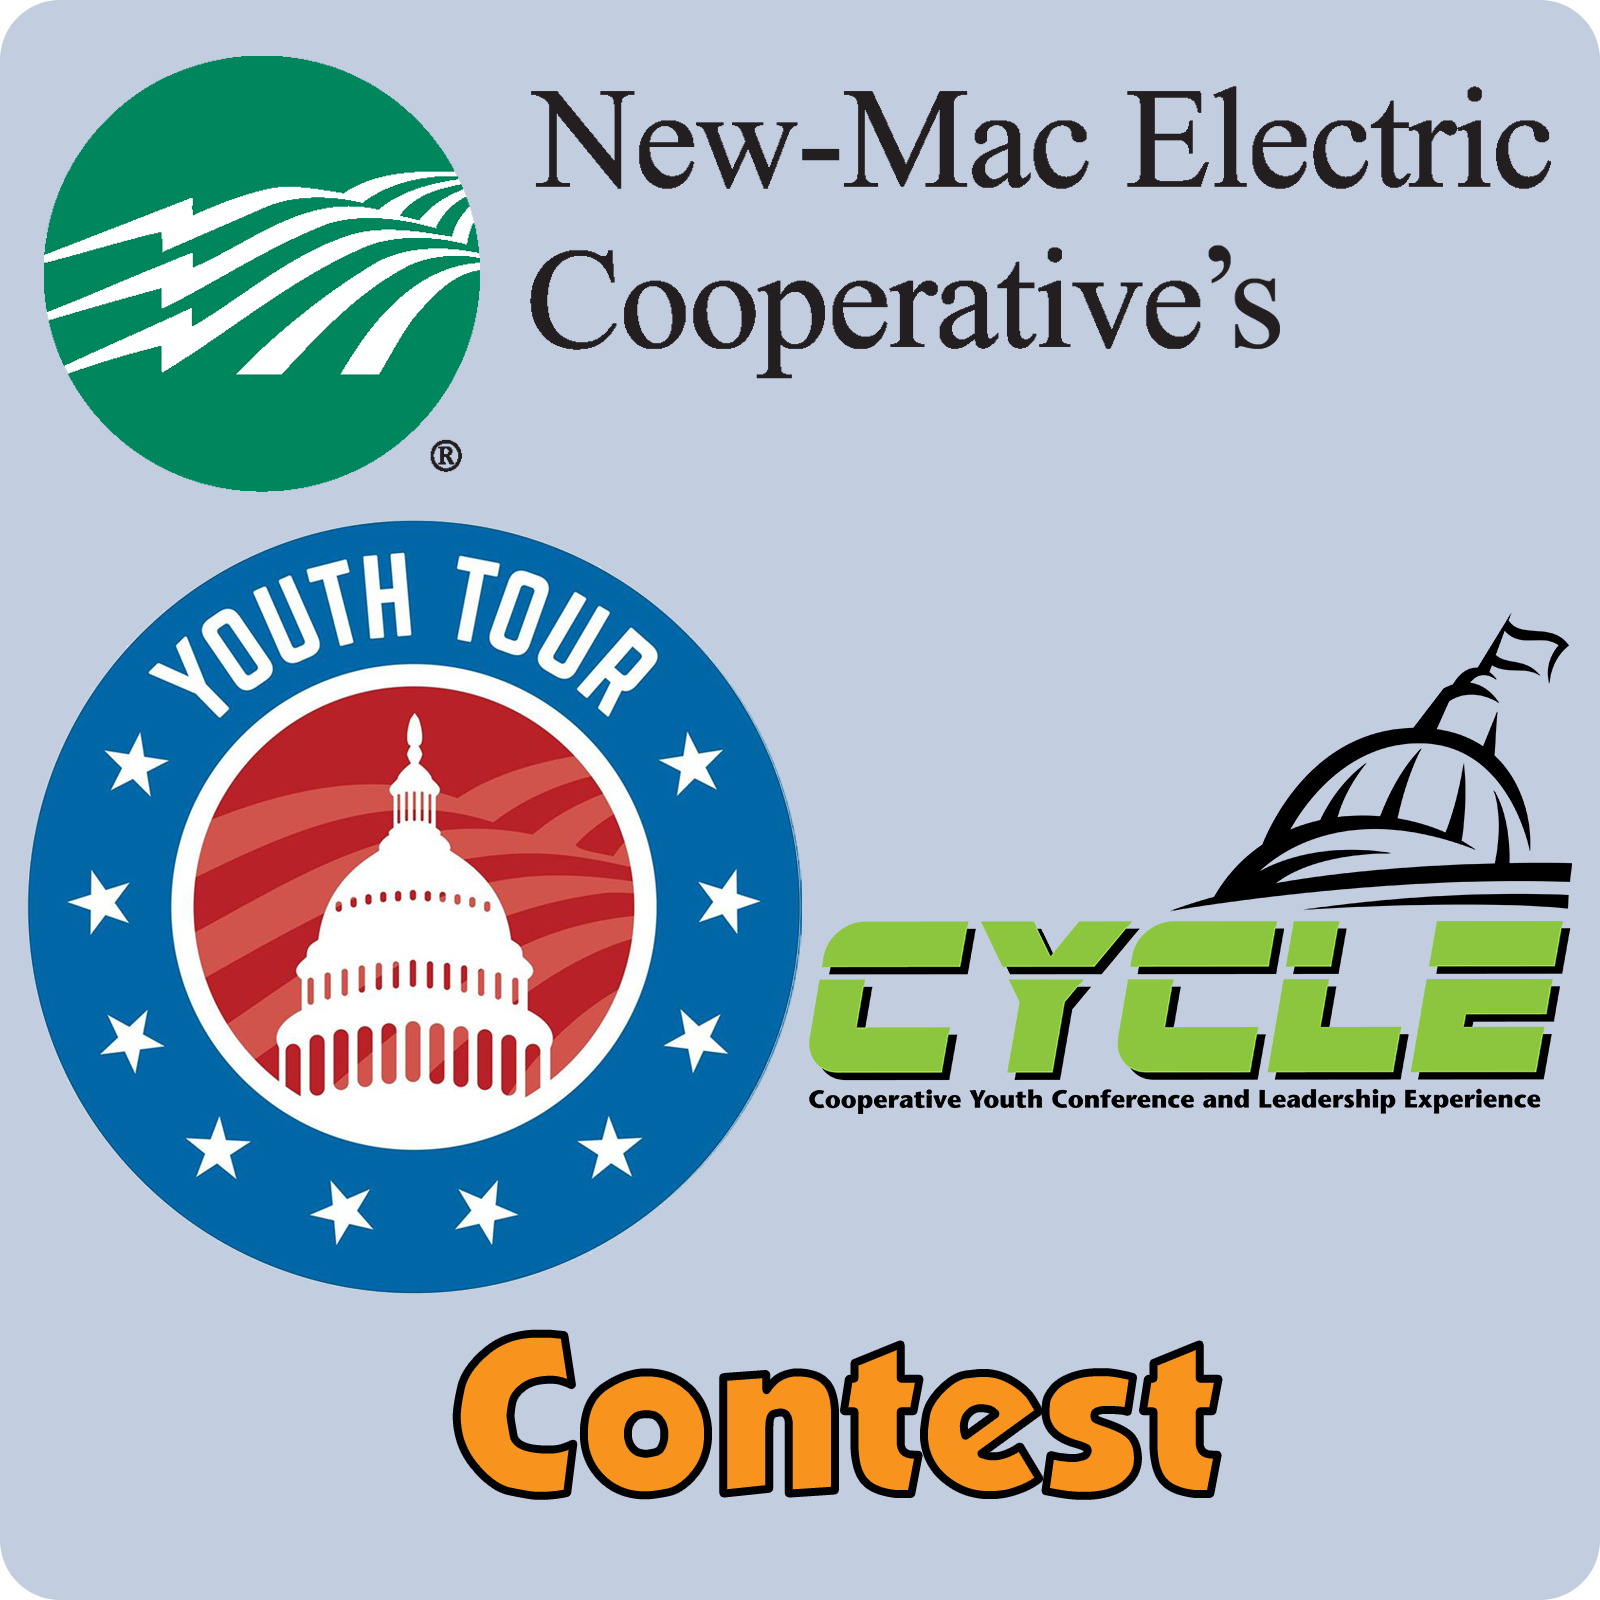 New-Mac's Youth Tour/CYCLE Contest